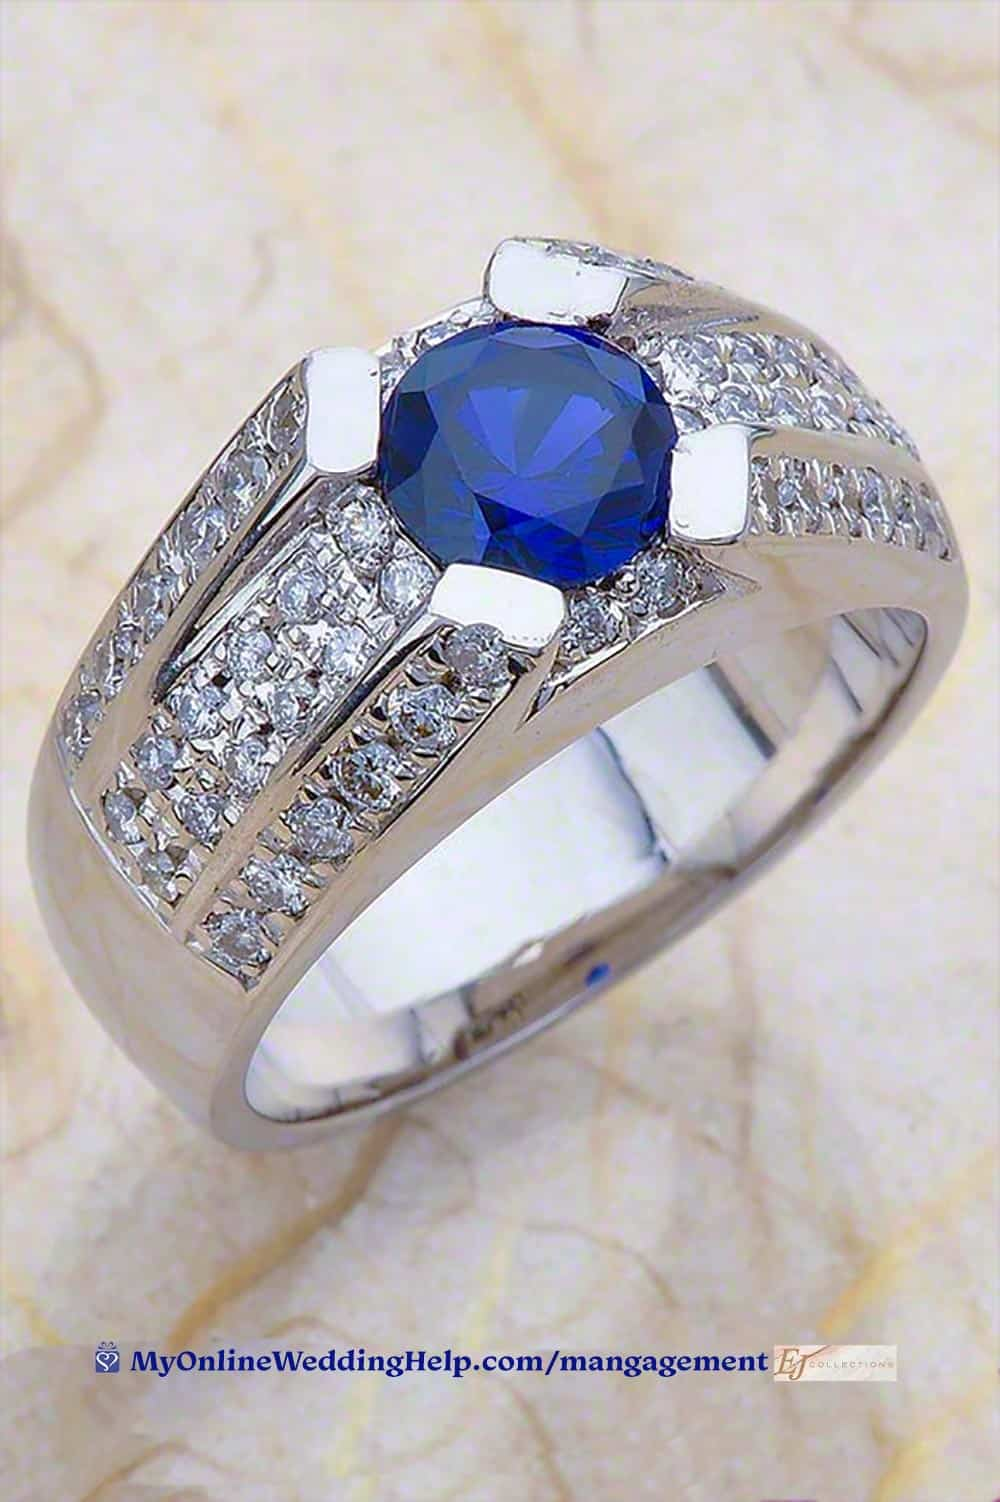 Men's Engagement or Mangagement Ring. Diamonds and solitaire sapphire.